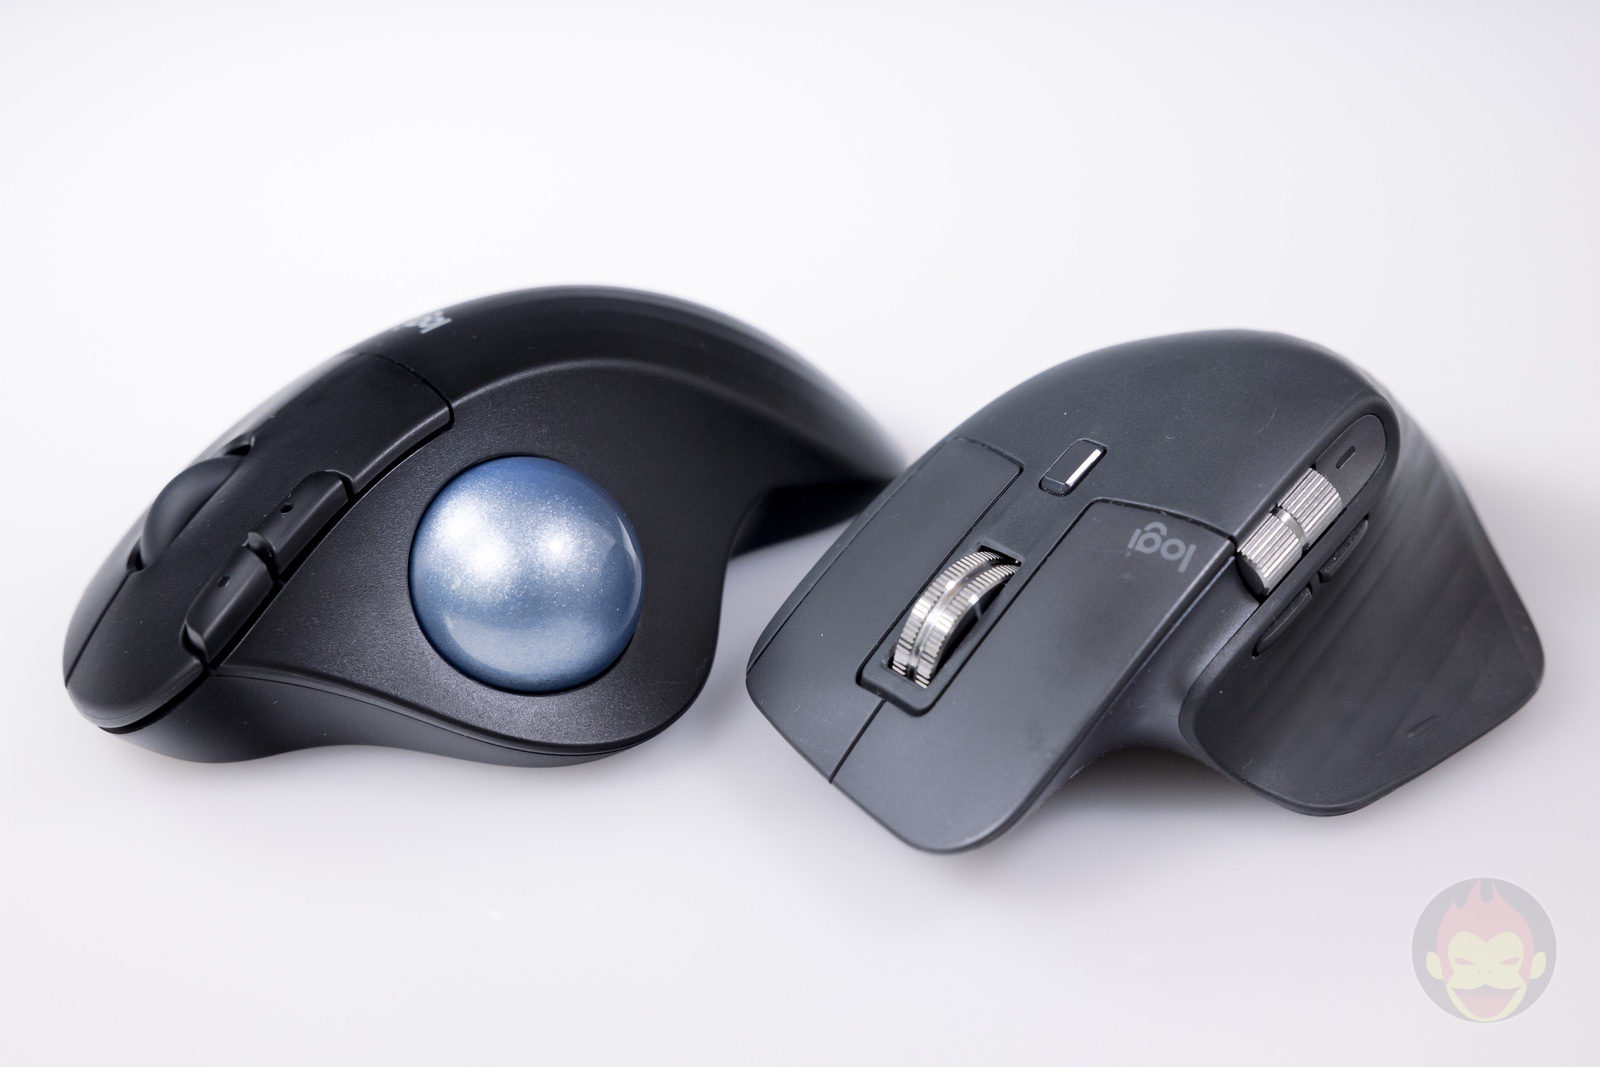 Logicool-ERGO-M575S-Trackball-Hands-on-13.jpg